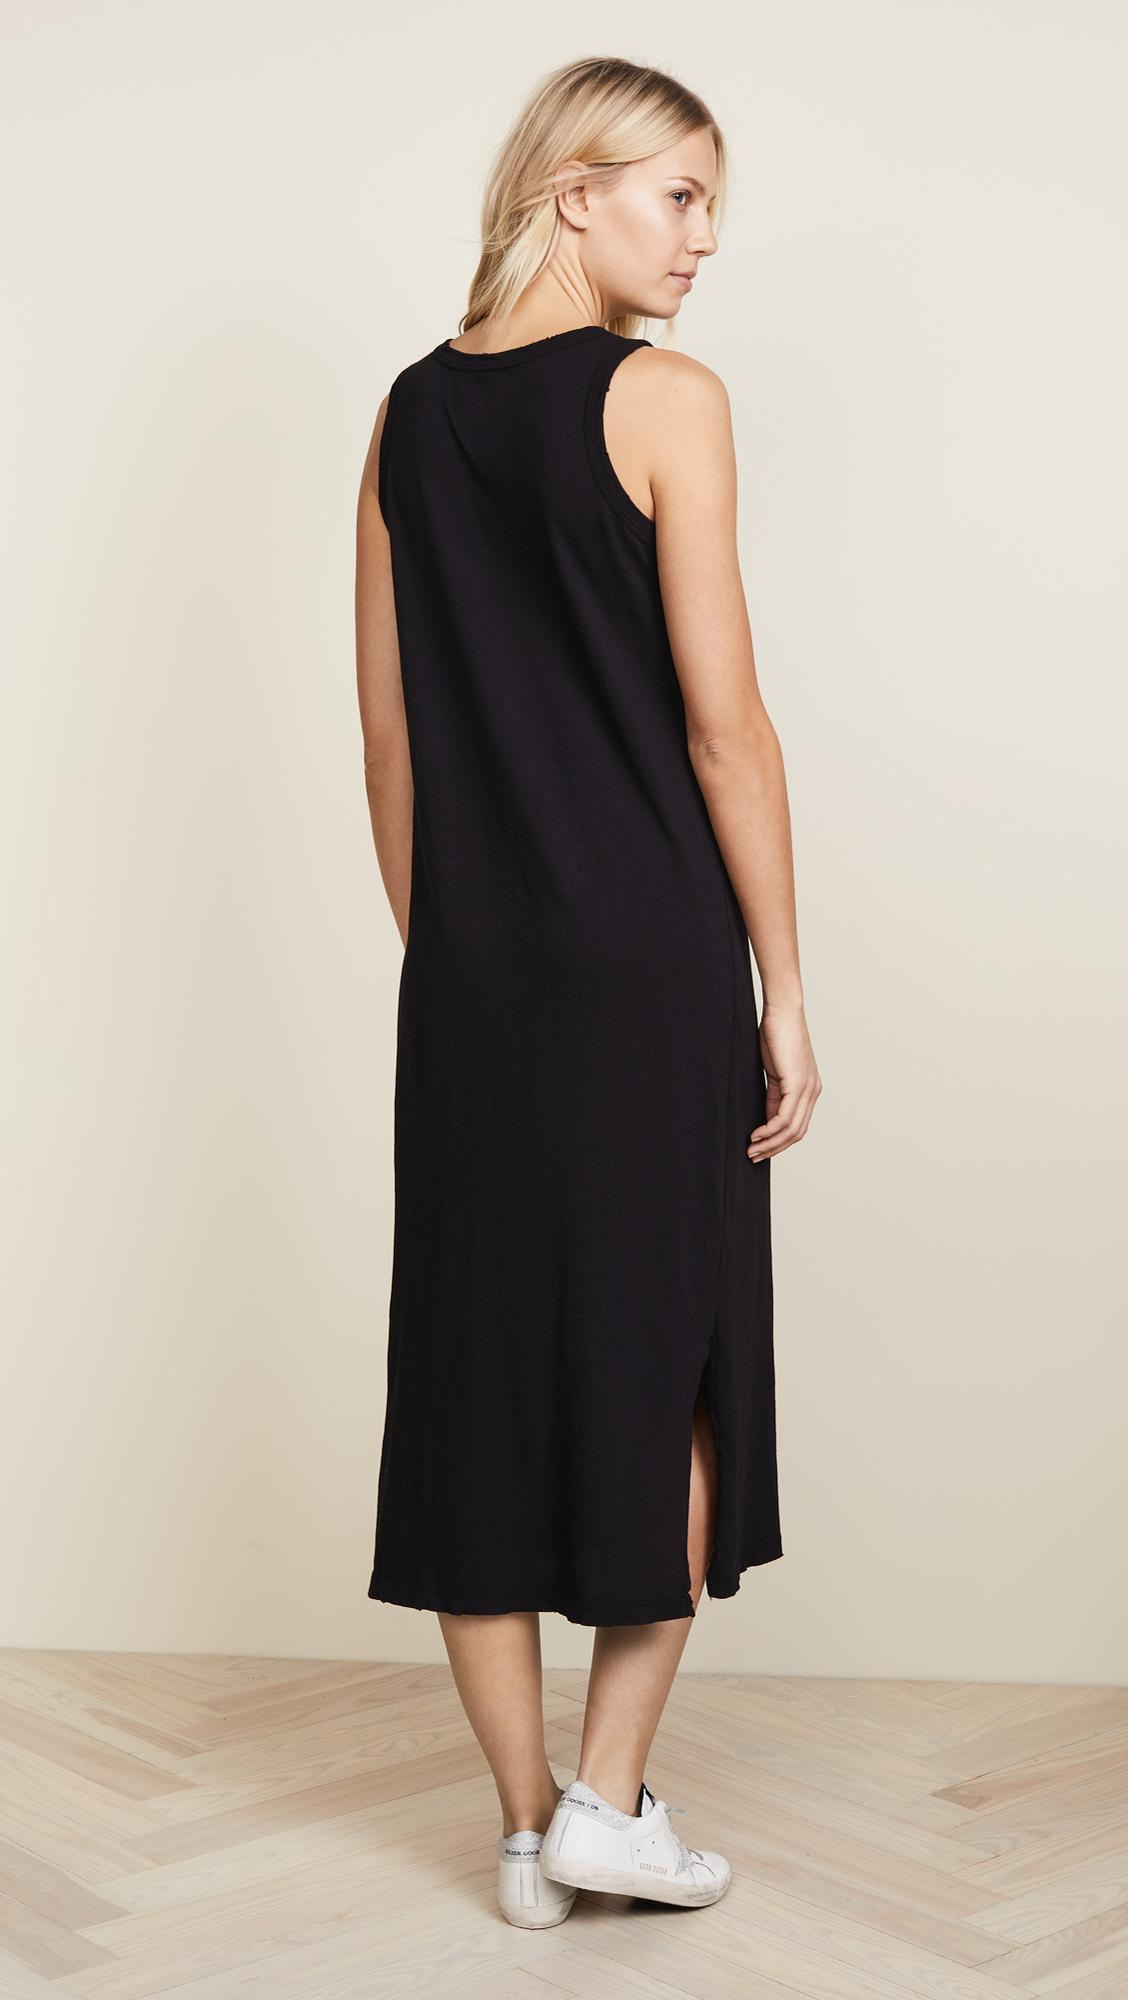 588d86fa03 Lyst - Current Elliott The Perfect Muscle Tee Dress in Black